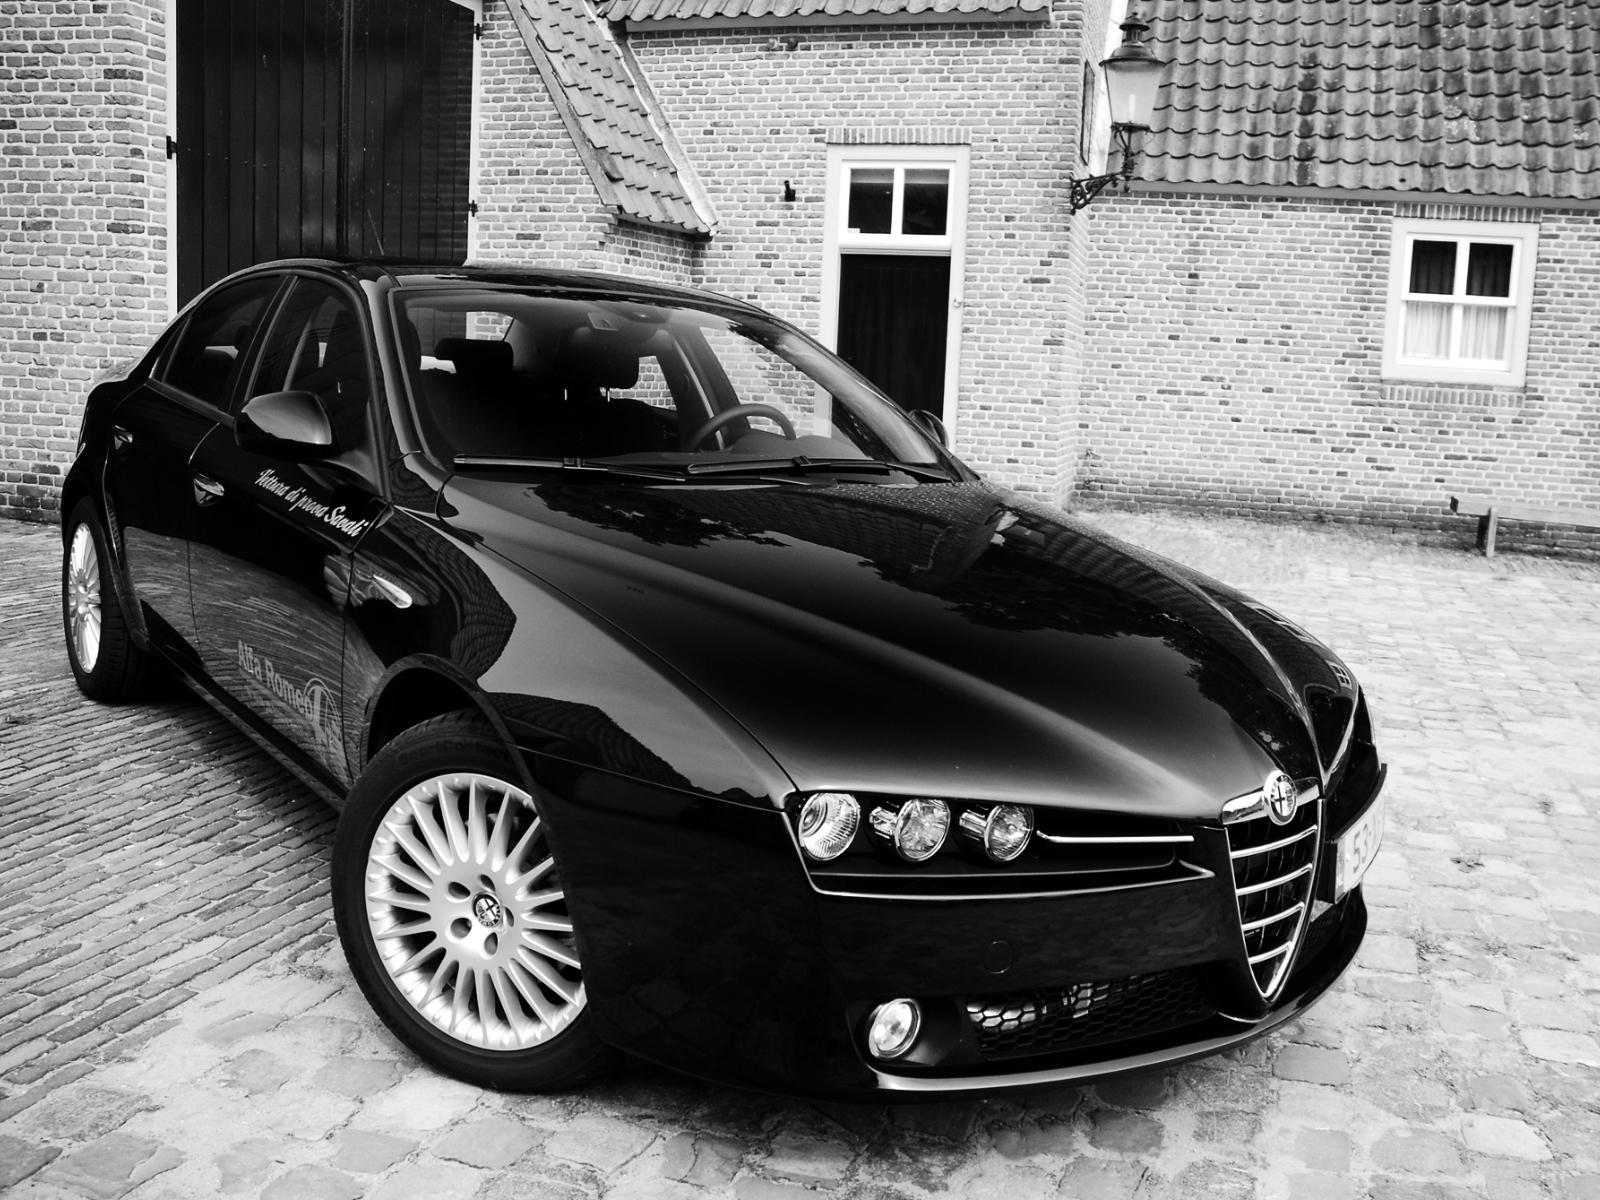 Alfa Romeo 159 Wallpapers Wallpaper Cave